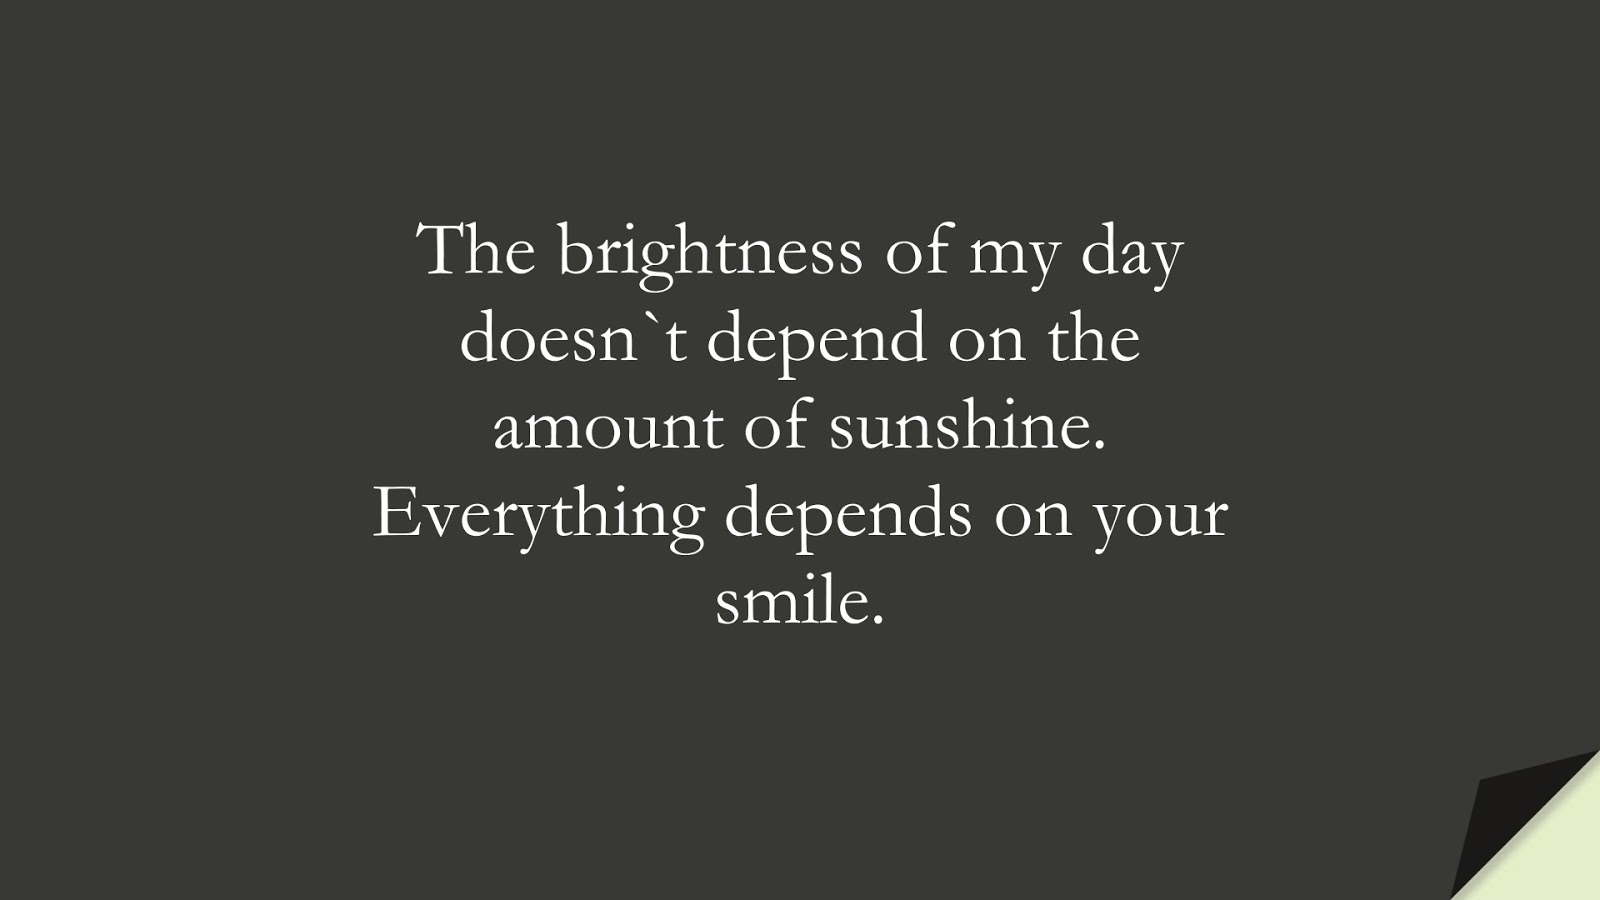 The brightness of my day doesn`t depend on the amount of sunshine. Everything depends on your smile.FALSE